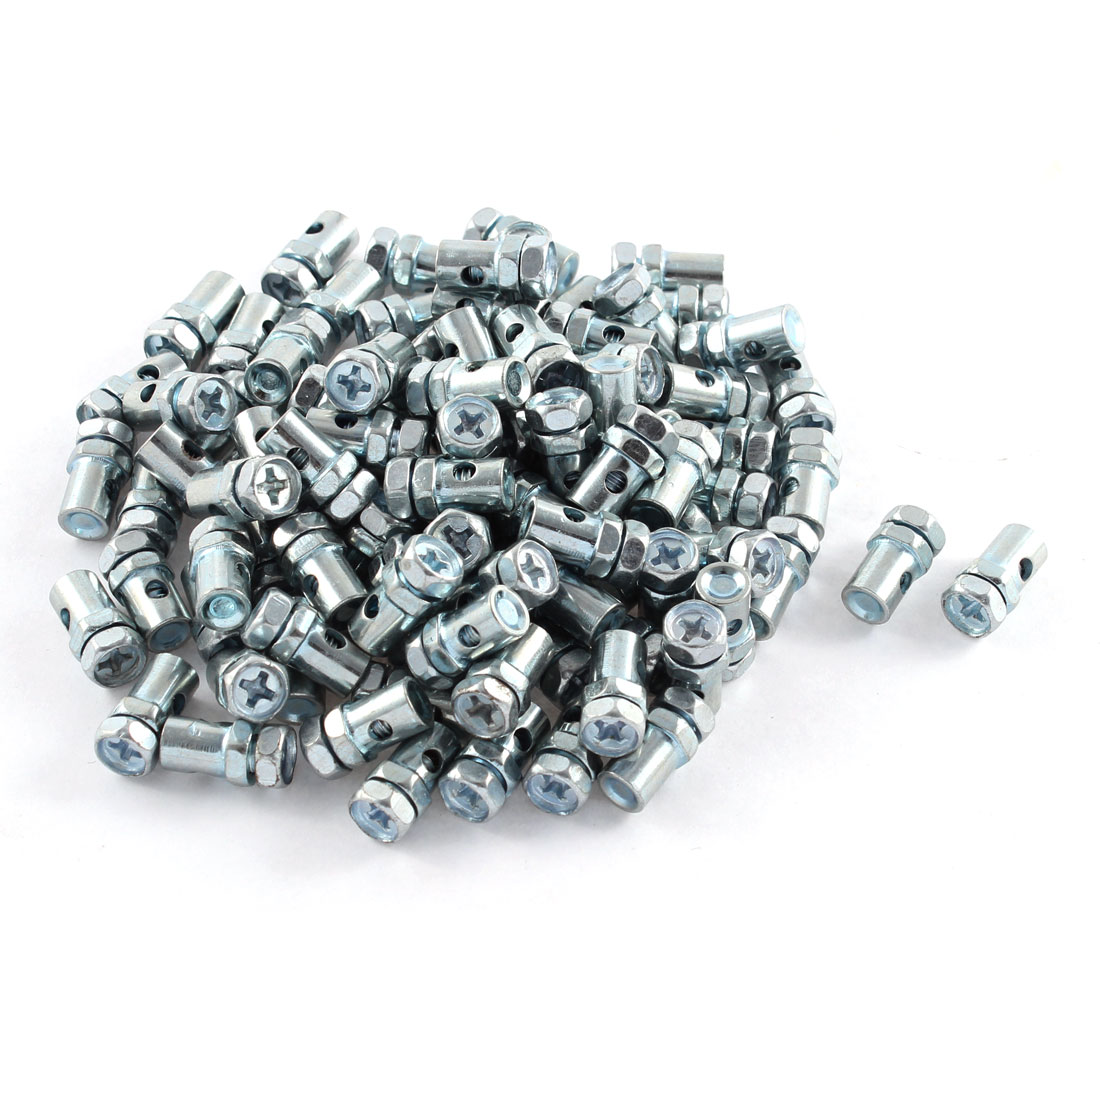 100 Pcs 8mm x 2mm Barrel Type Phillips Head Screw Motorcycle Cable Bolts Top Fitting Solderless Nipple